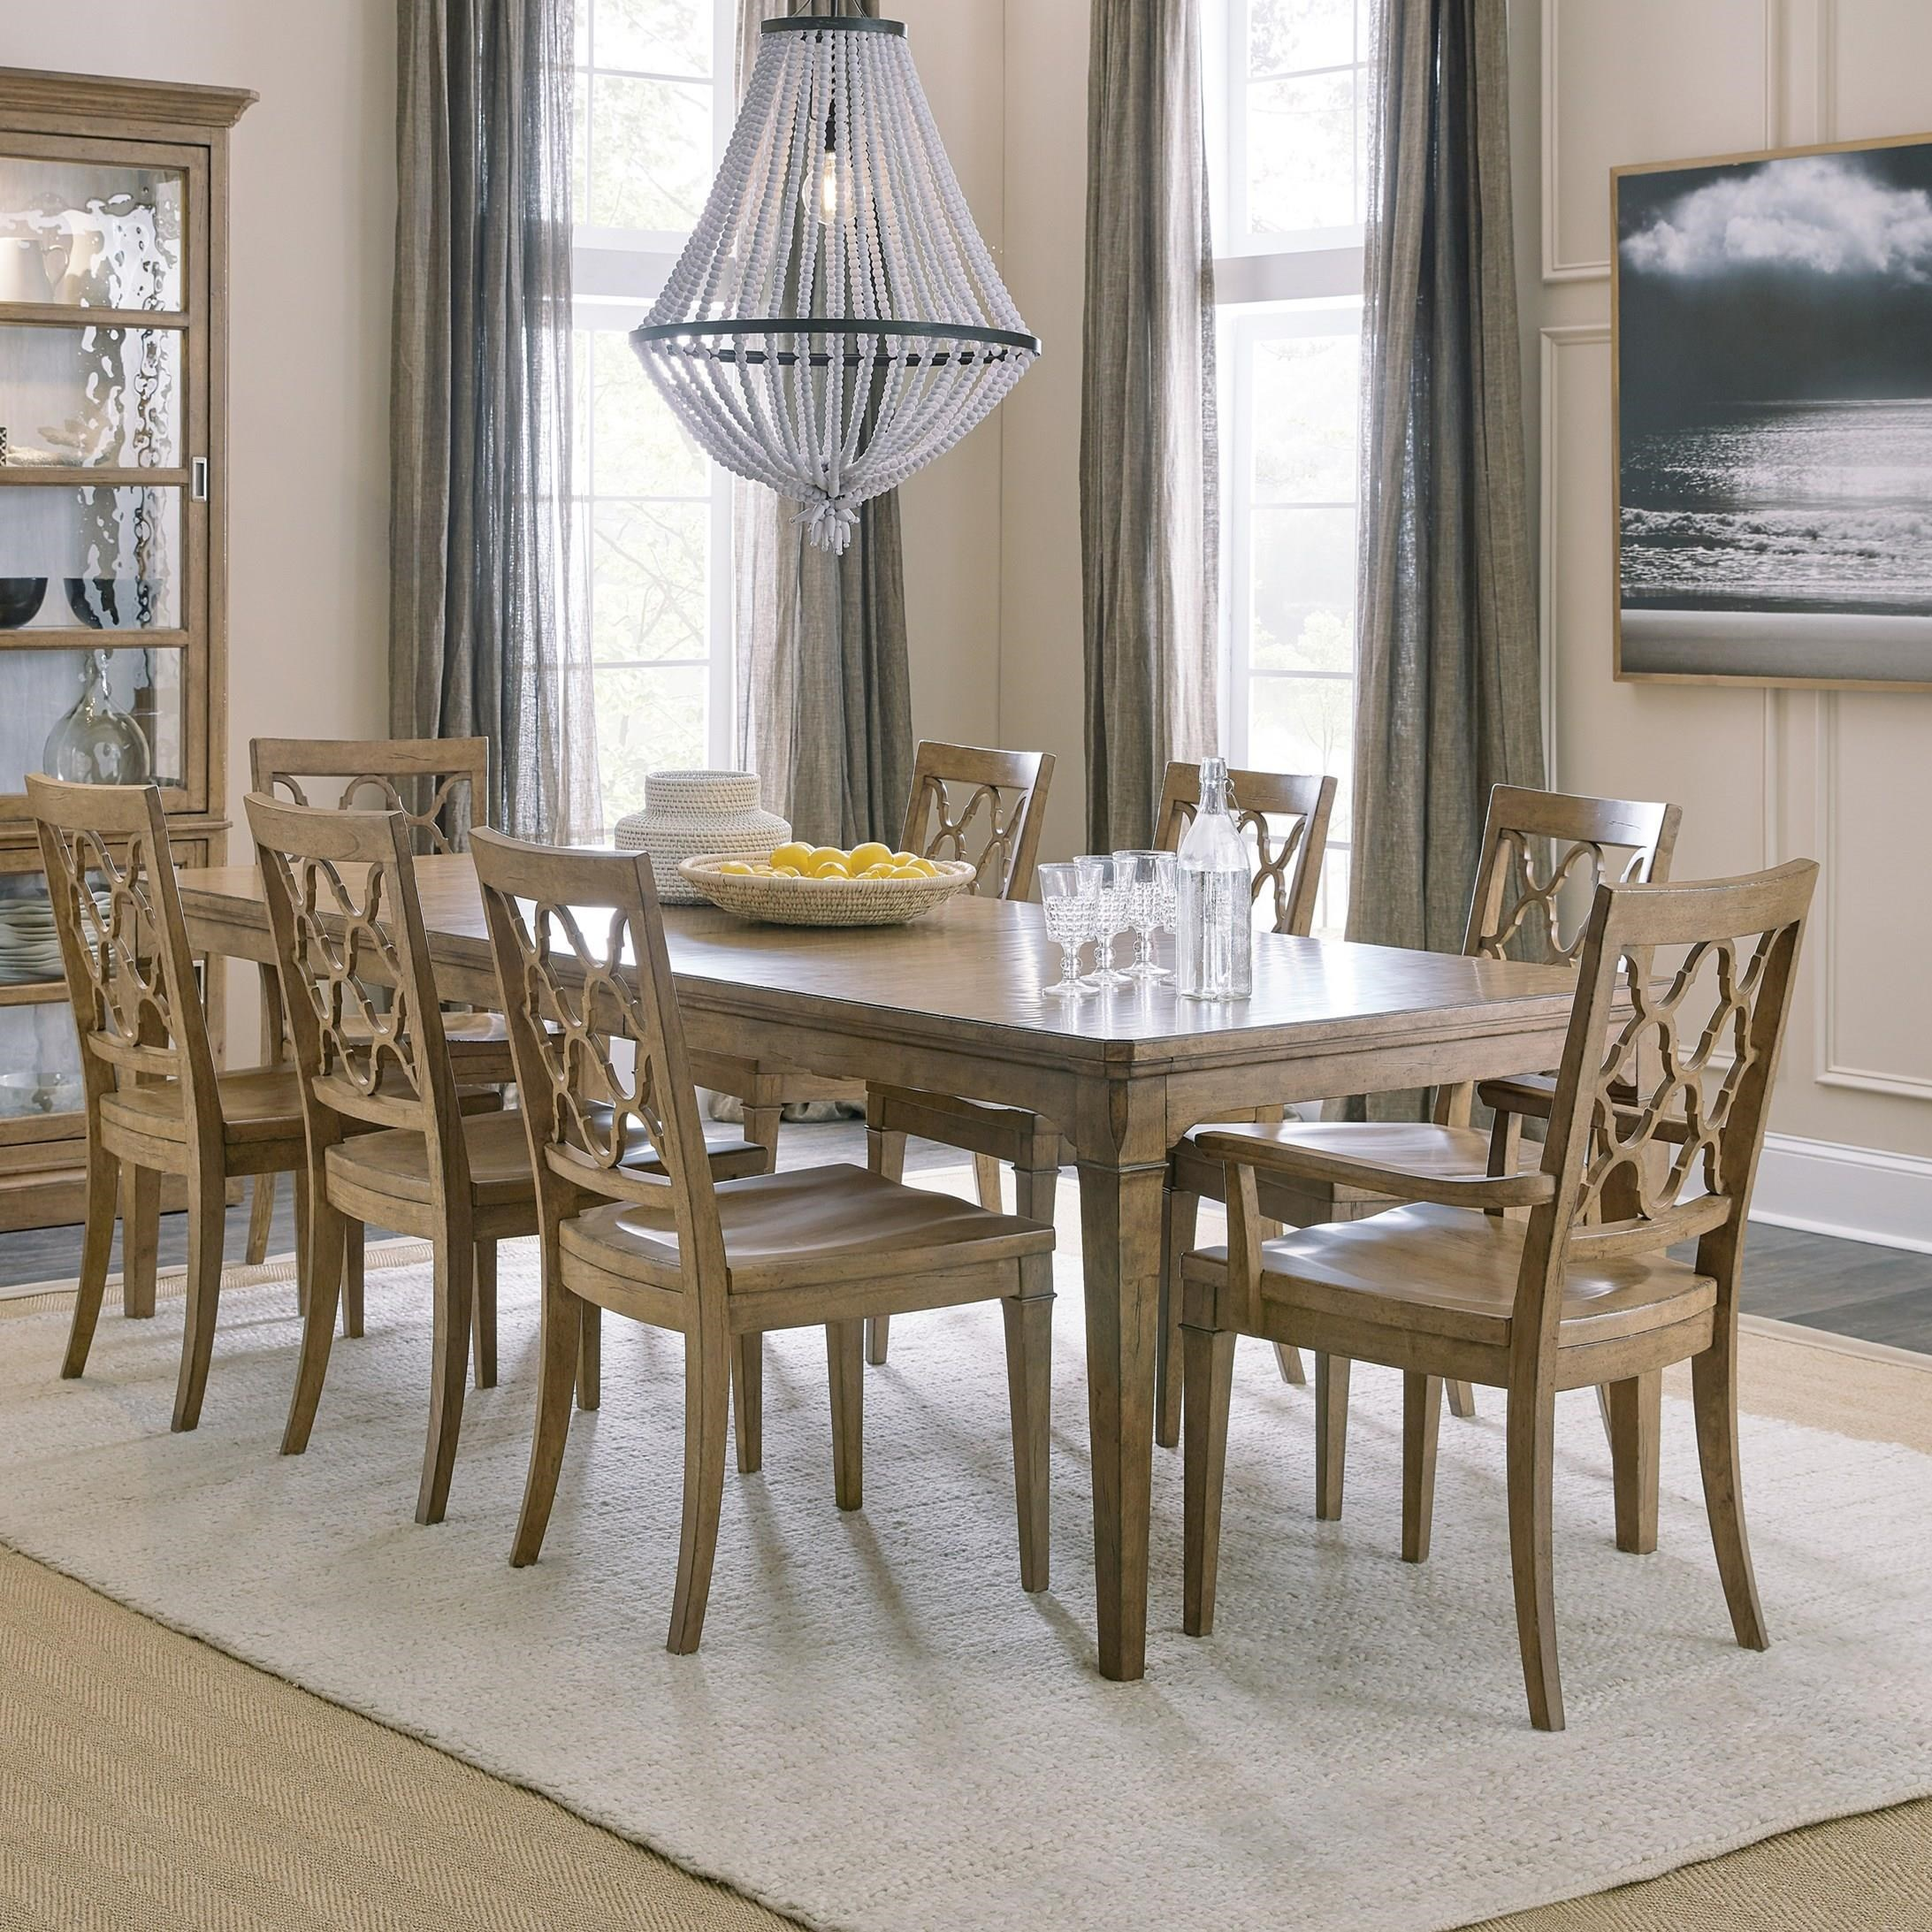 Montebello 9-Piece Dining Set by Hooker Furniture at Baer's Furniture